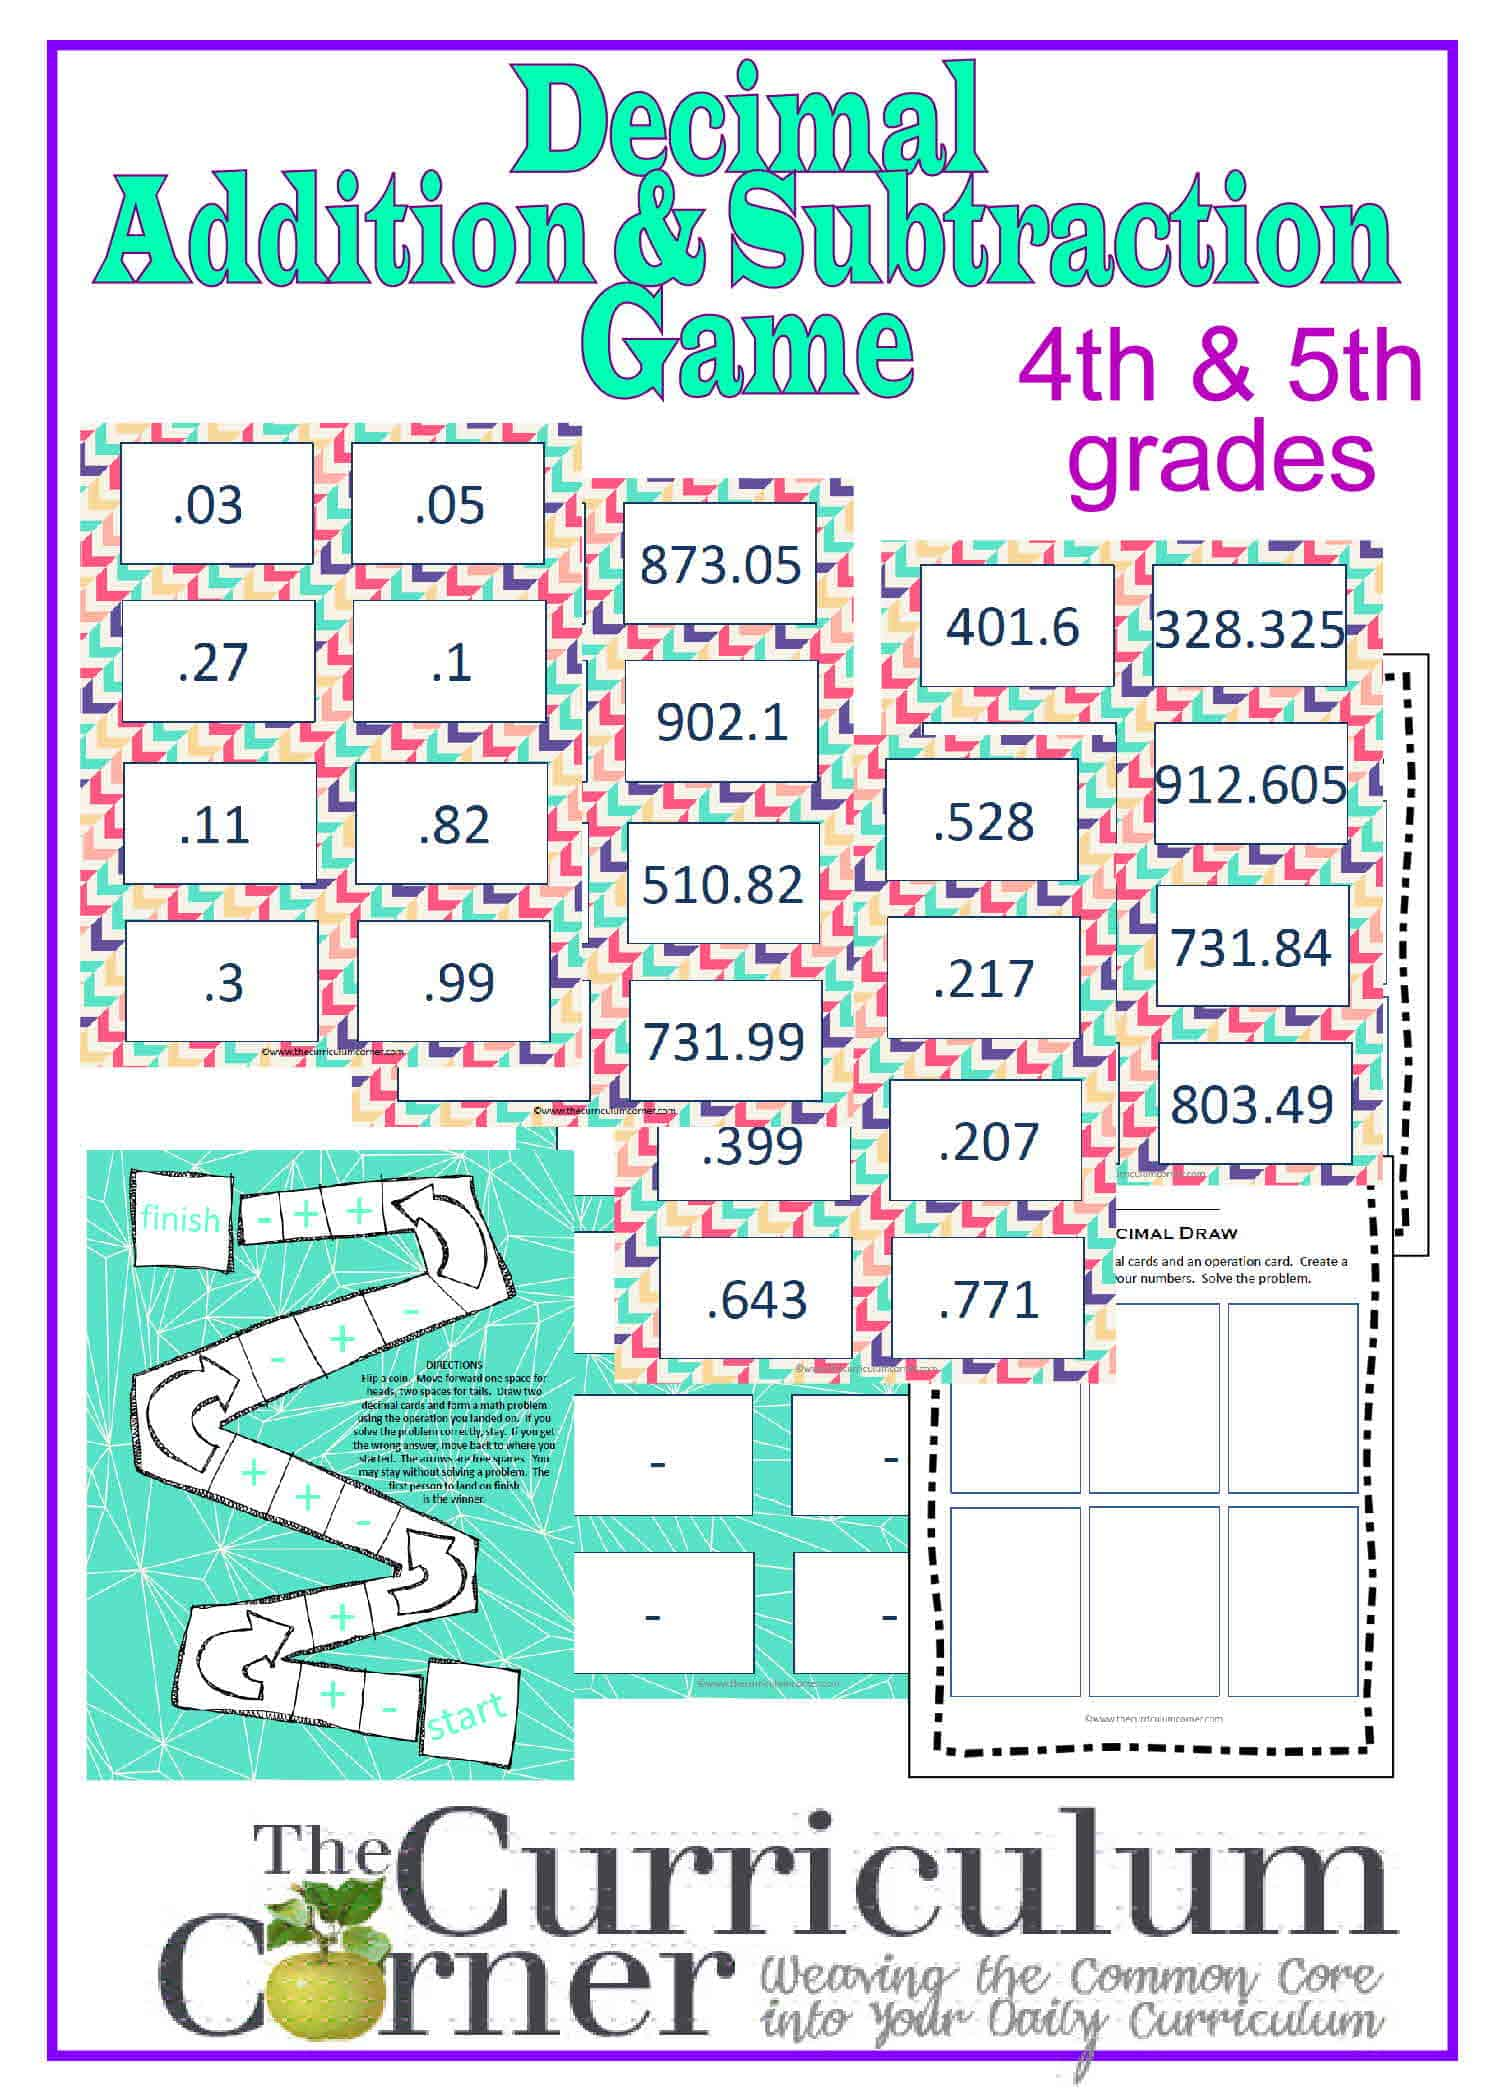 Worksheet Decimal Addition And Subtraction Games adding subtracting decimals game the curriculum corner 4 5 6 and for 4th 5th grades free from corner